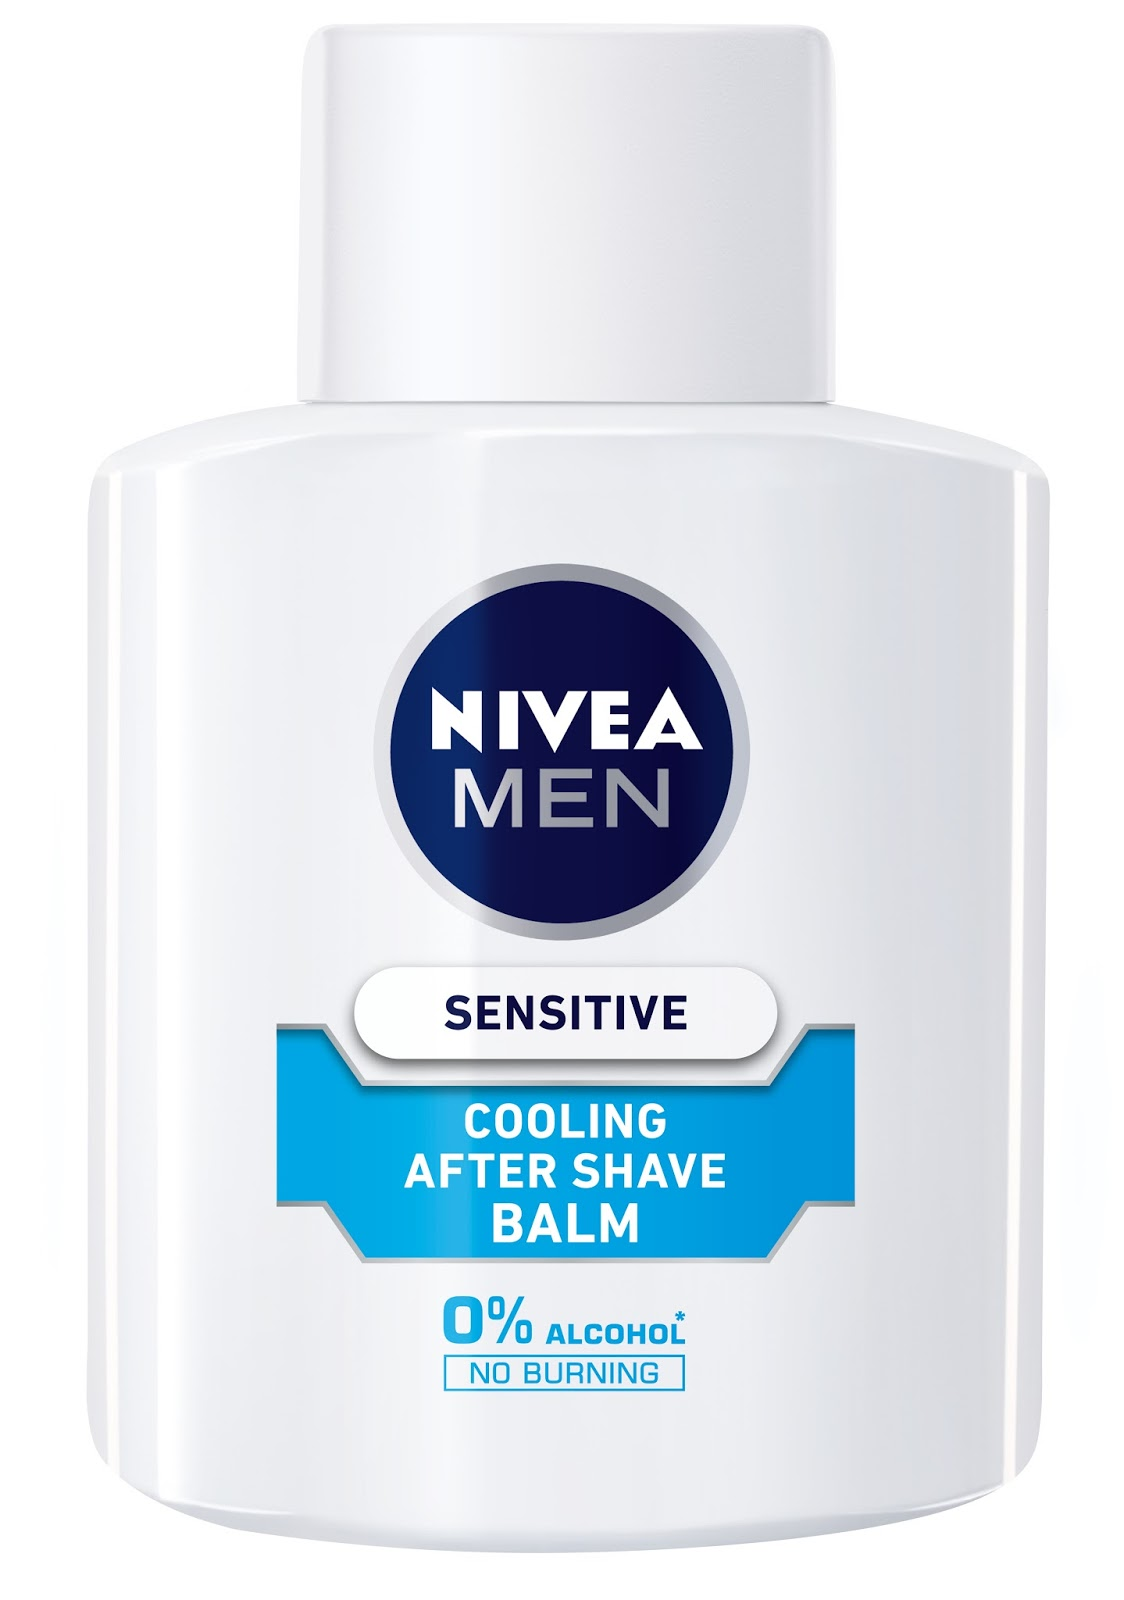 nivea_men_sensitive_cooling_aftershave_balm_01